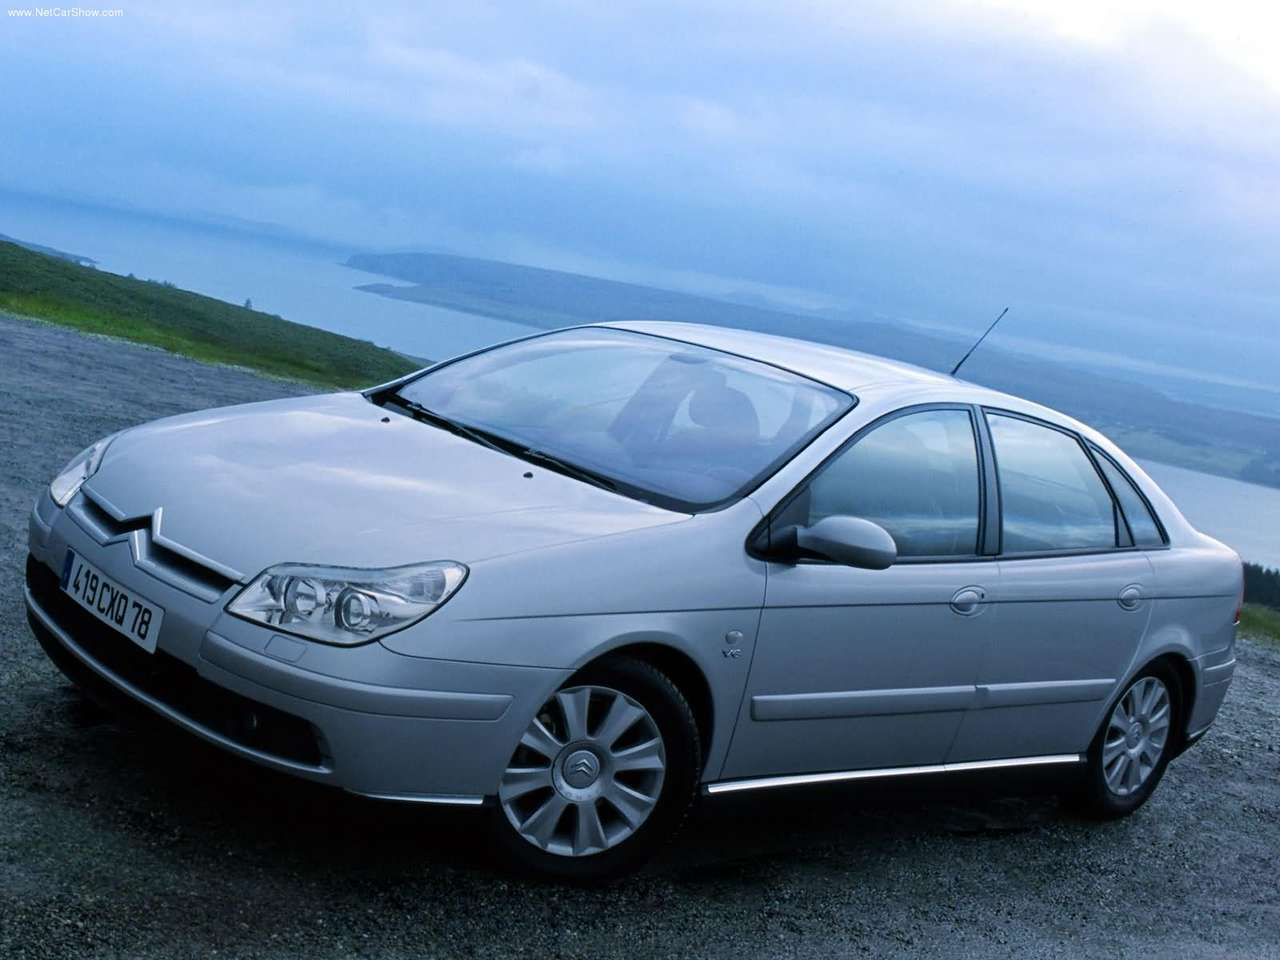 manual car download citroen c5 2005 owners handbook rh manualcardownload blogspot com Citroen C5 2008 Citroen C5 2008